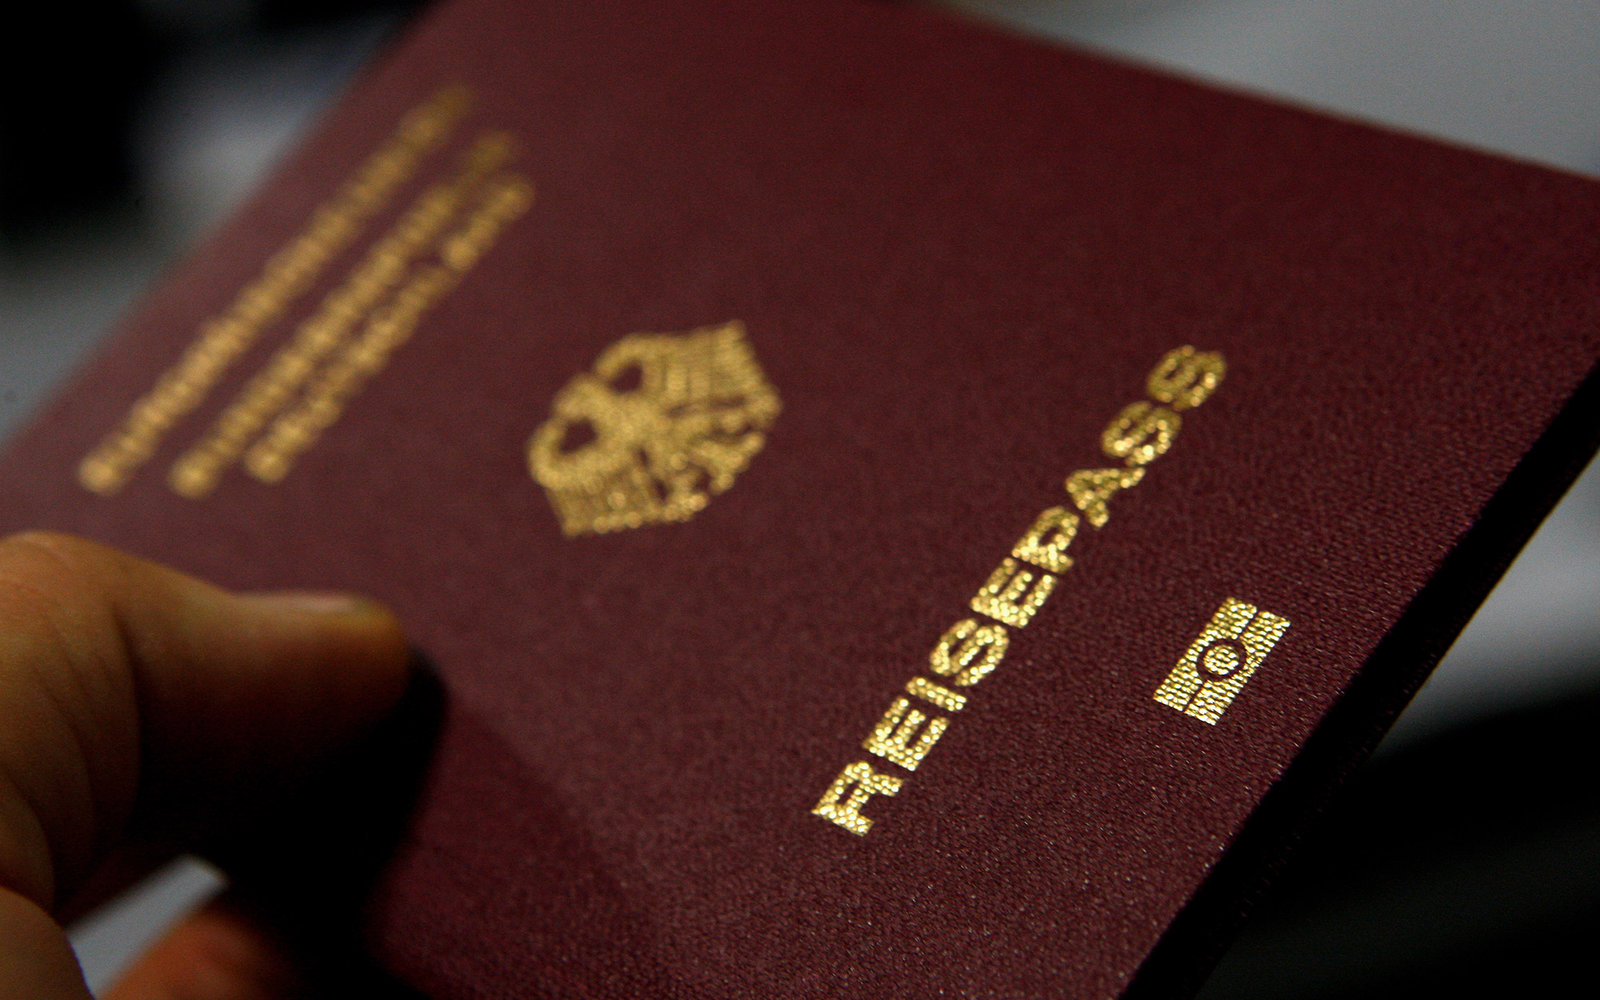 FRANKFURT AM MAIN, GERMANY - OCTOBER 16:  A man holds up a passport with the EasyPass sign at the bottom during the presentation of the new automated border control system easyPass at Frankfurt International Airport on October 16, 2009 in Frankfurt am Mai